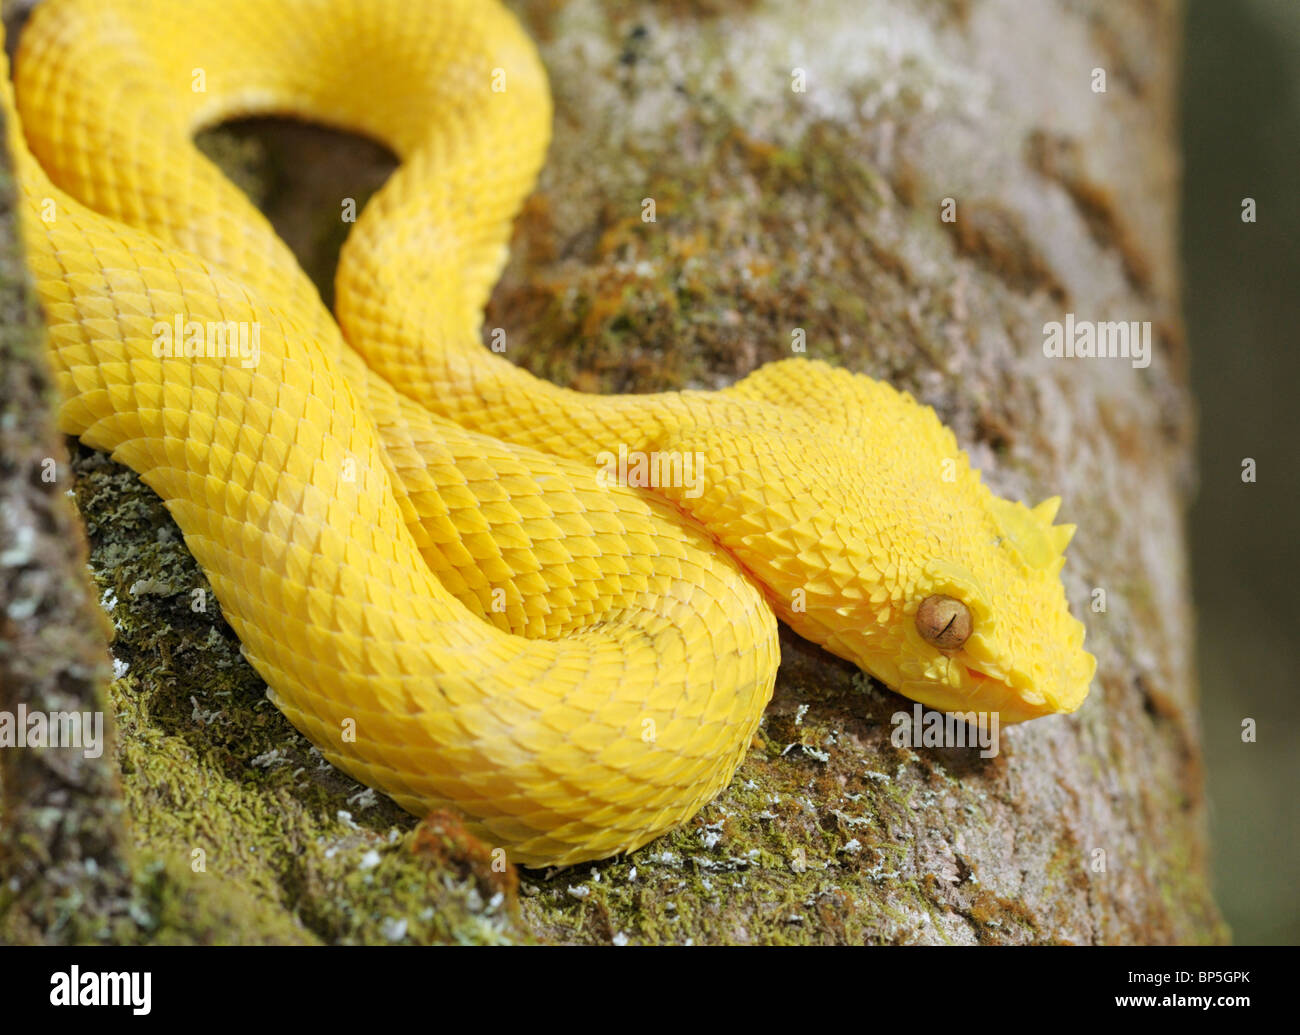 Bothriechis schlegelii cils, Viper, parc national Arenal, Costa Rica Photo Stock